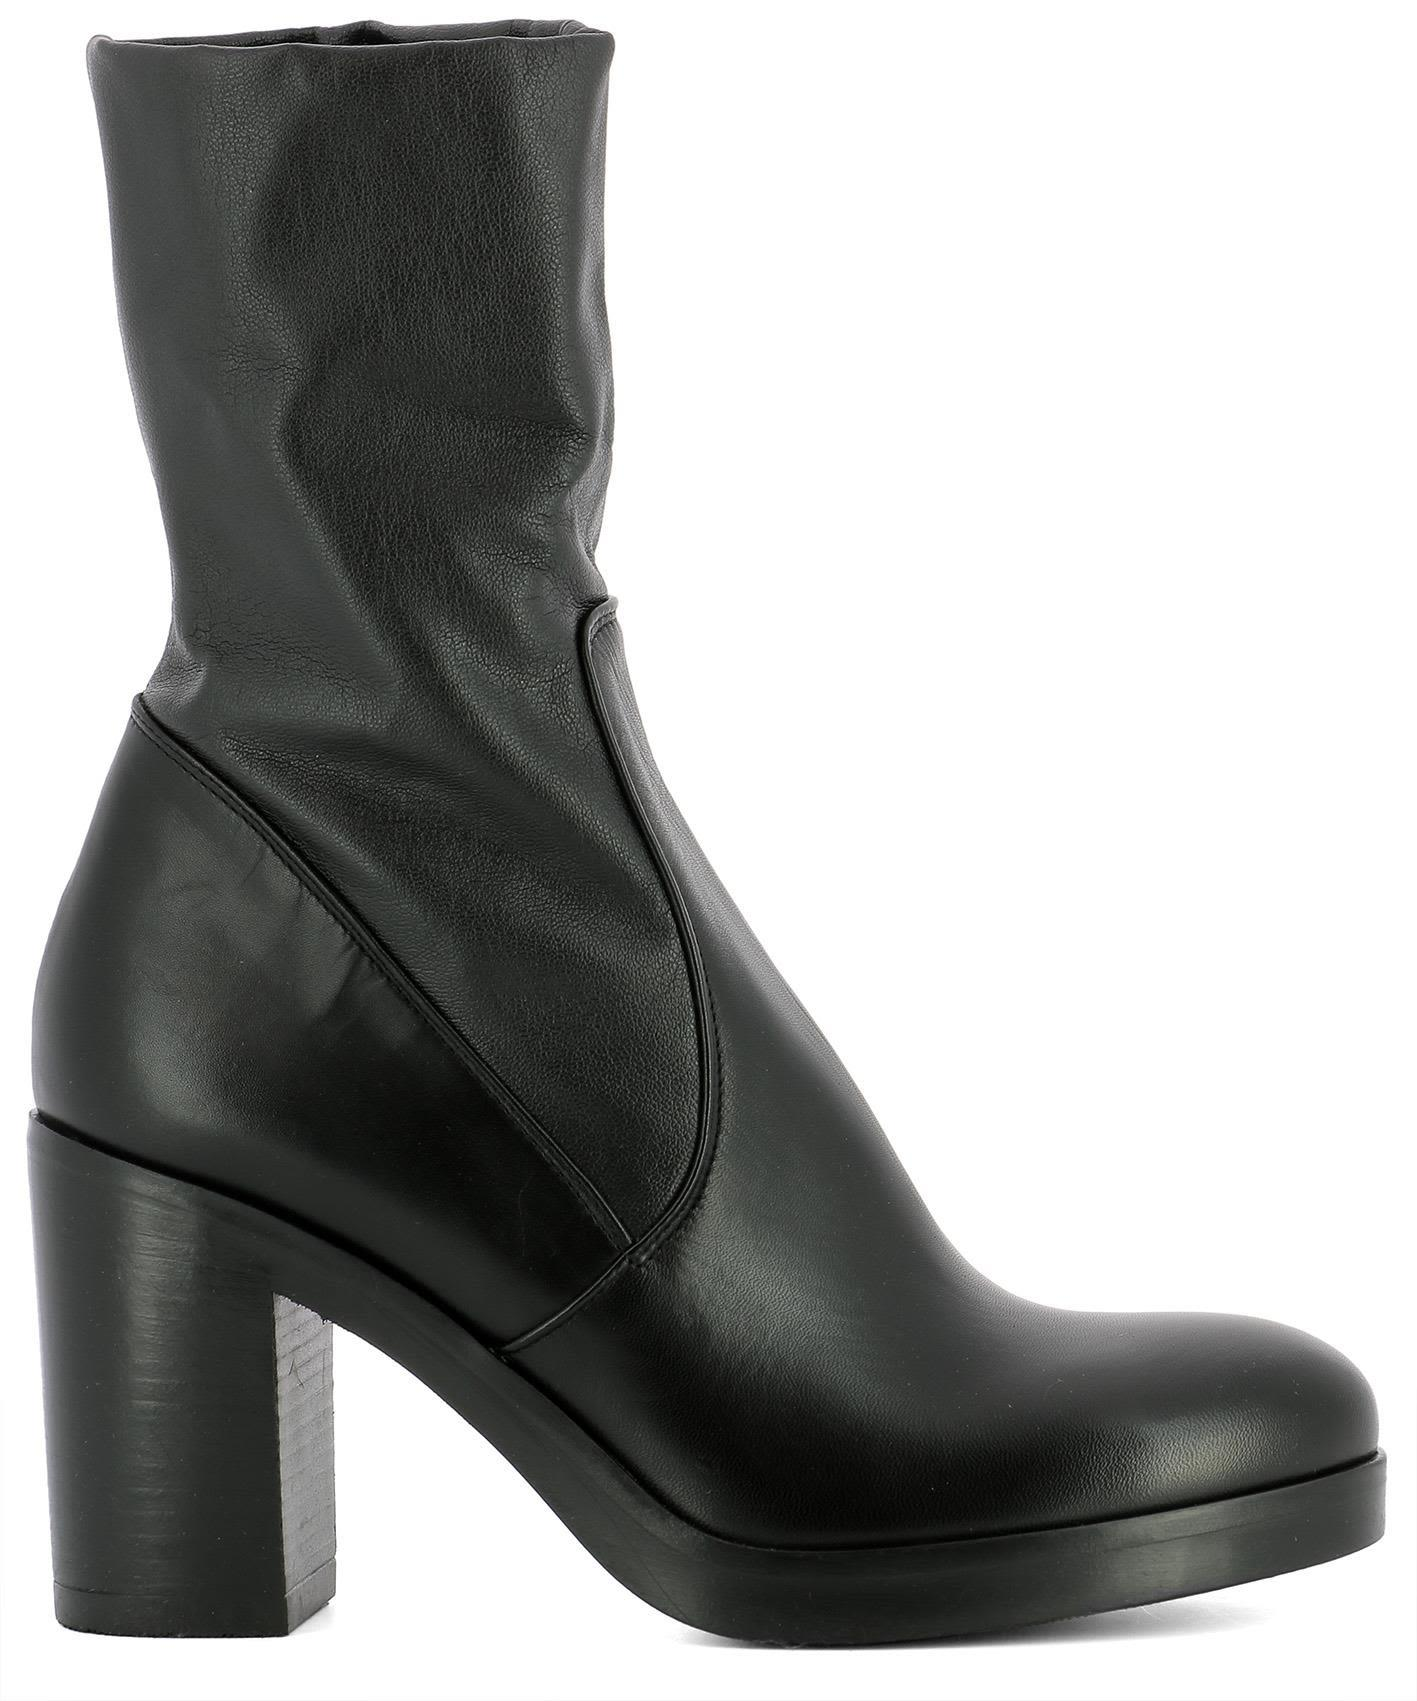 Strategia Black Leather Heeled Ankle Boots